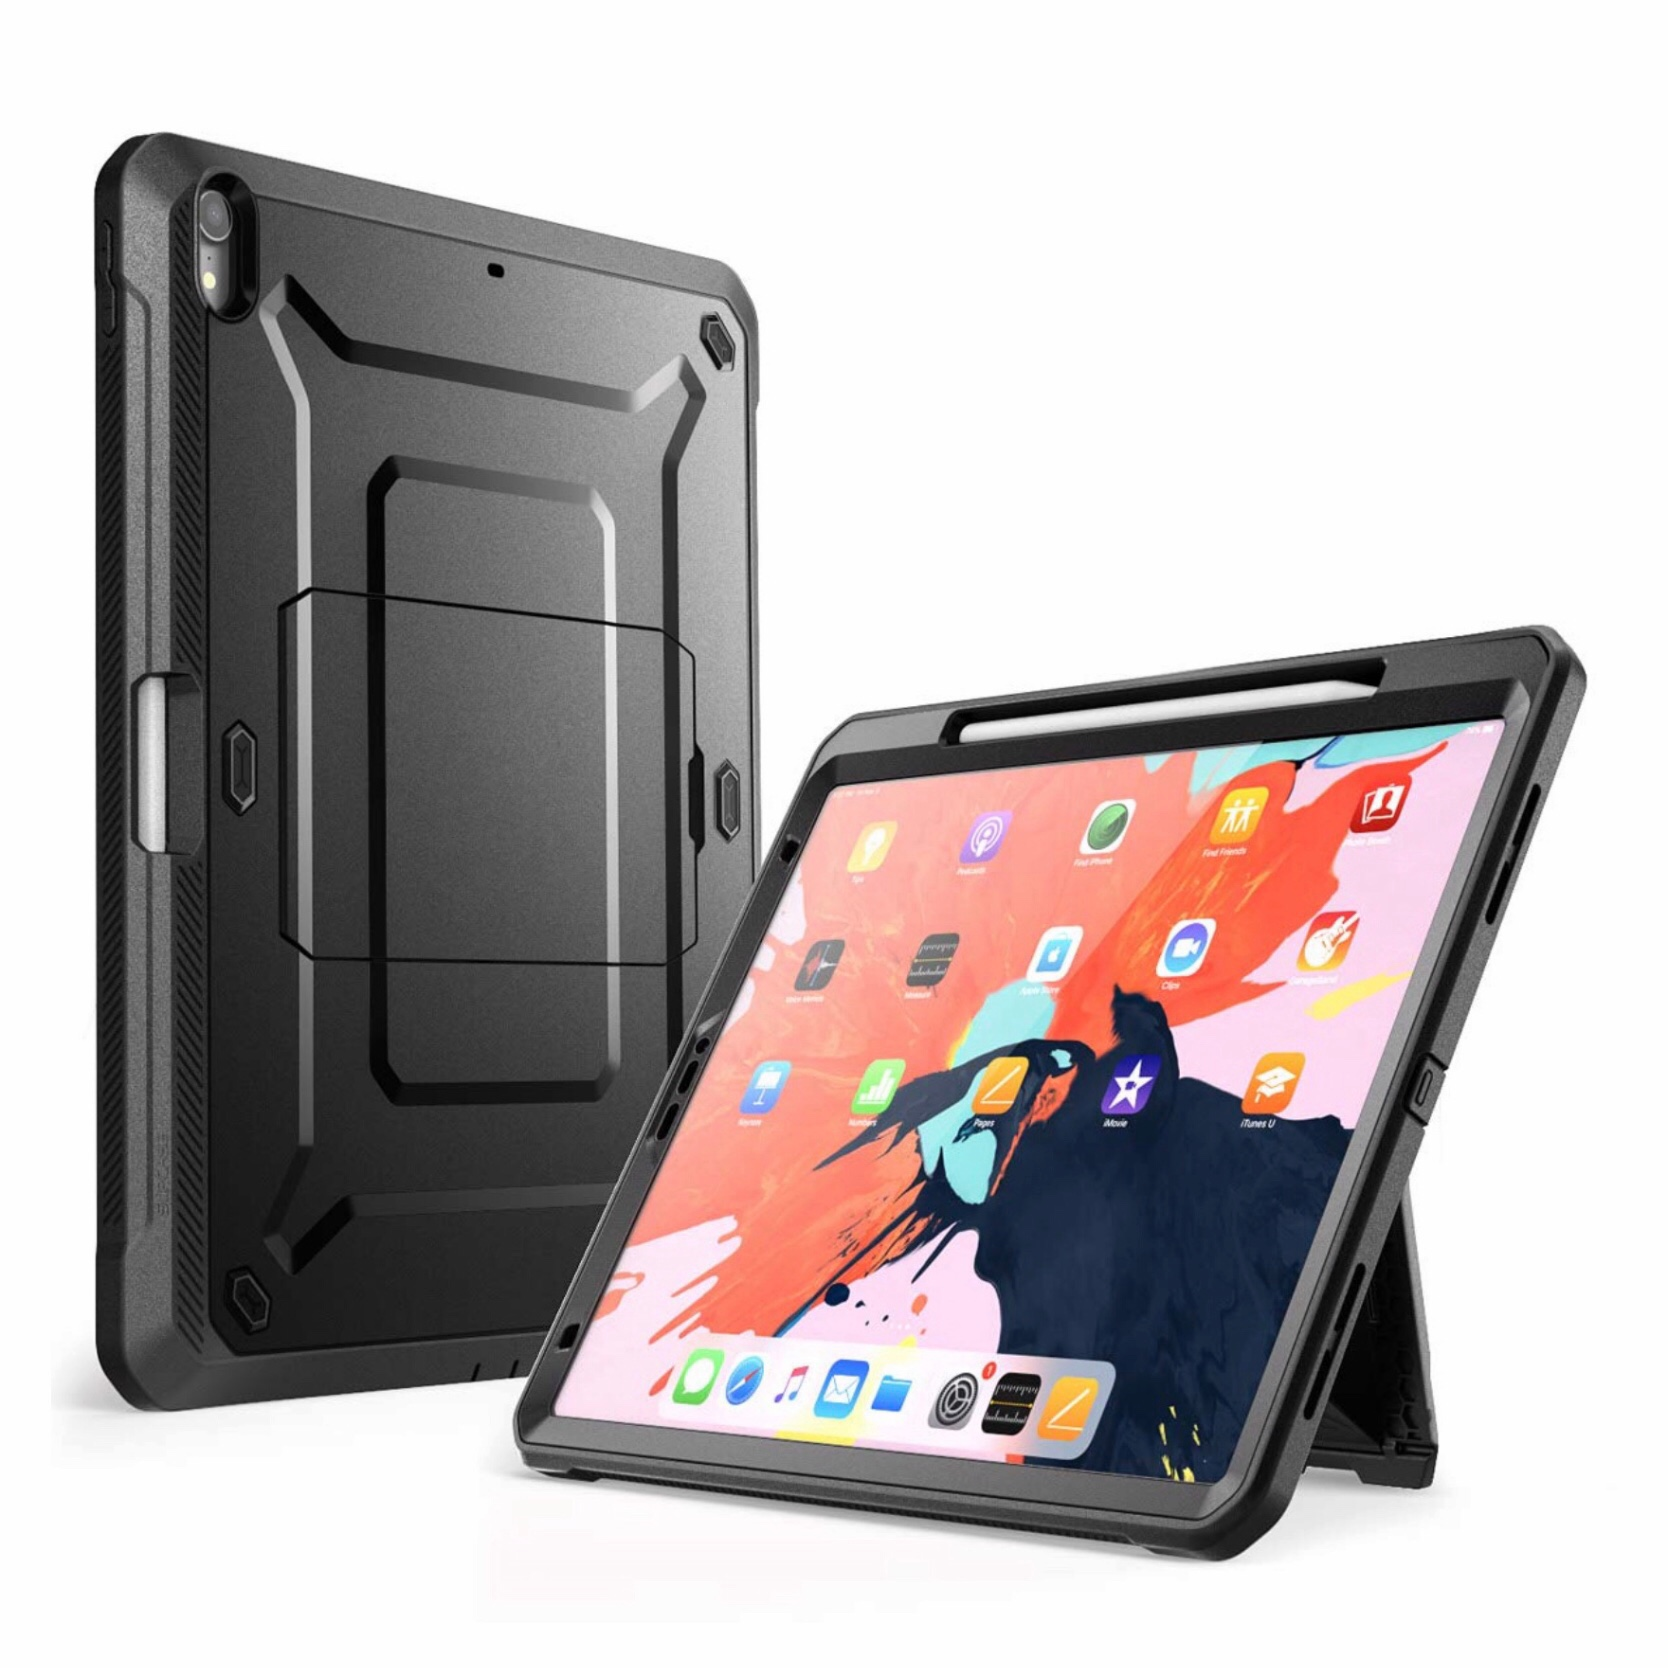 Coque 3 en 1 Protection Film rigide ecran et support stylet iPAD iPAD PRO 2018 11 pouces Footer Anthracite